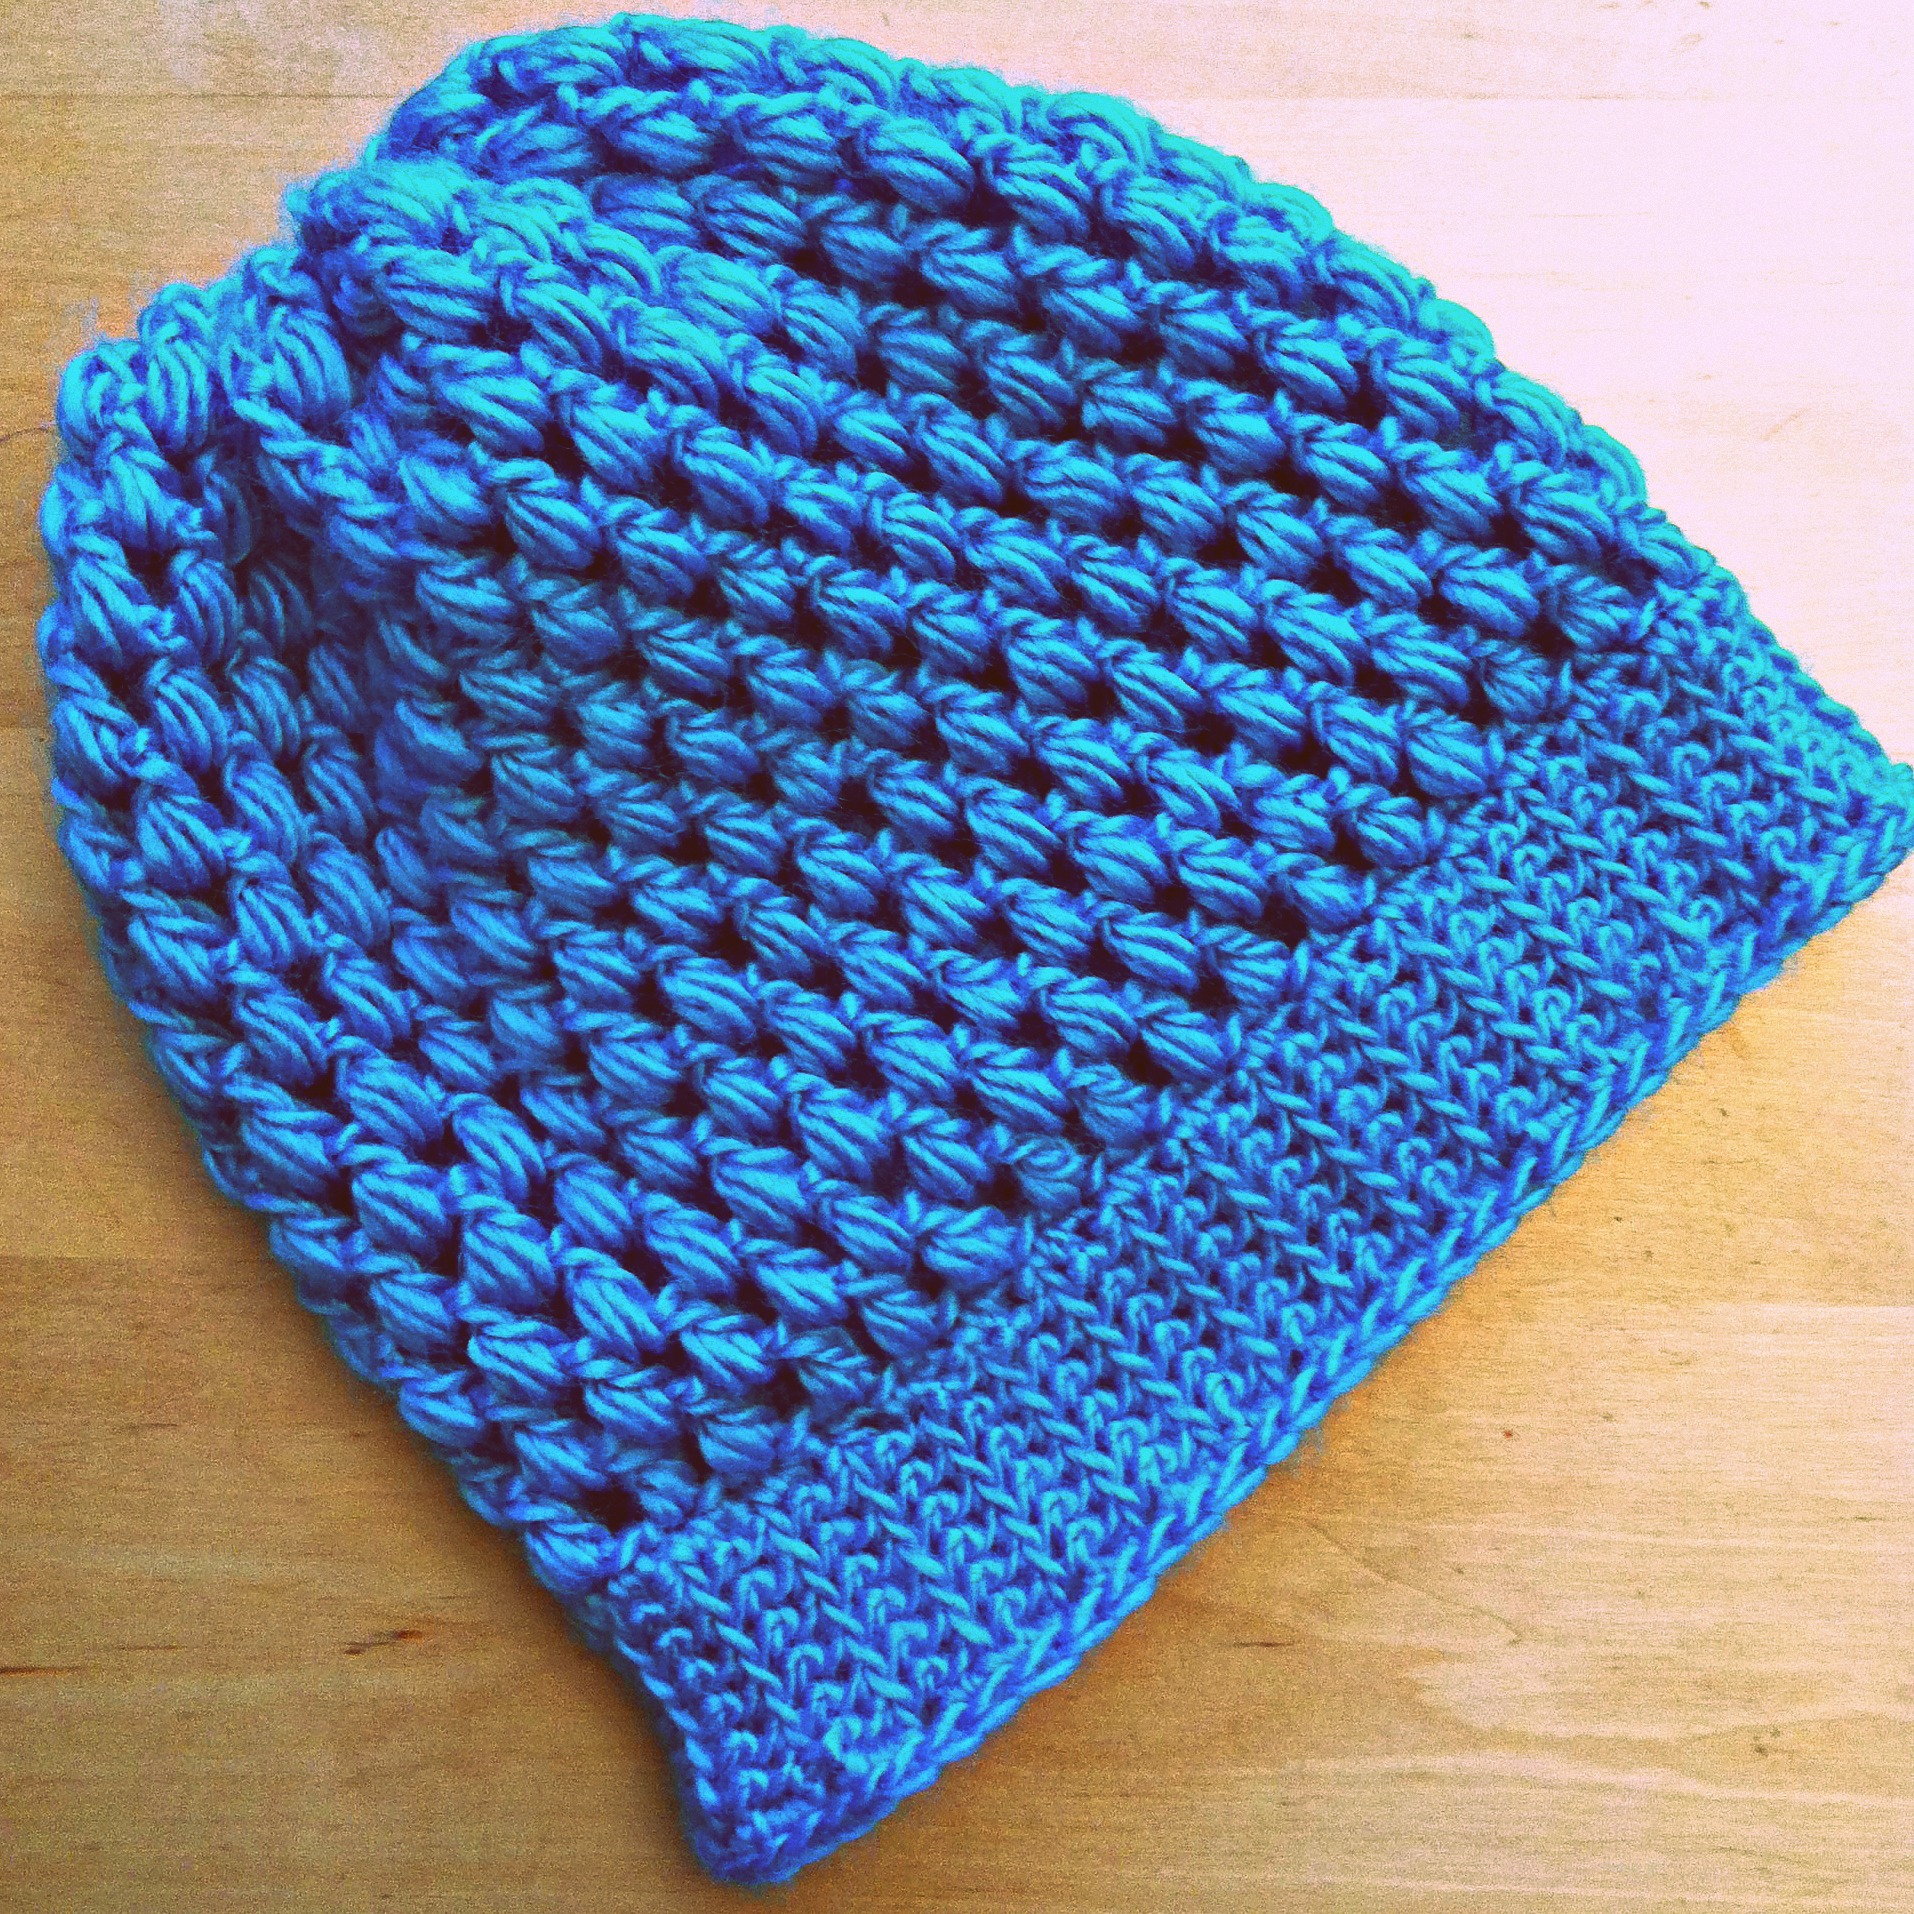 How To Crochet A Beanie Tutorial Beginner Friendly : Sew Creative Crocheted Kids Slouch Hat Pattern- Great for ...